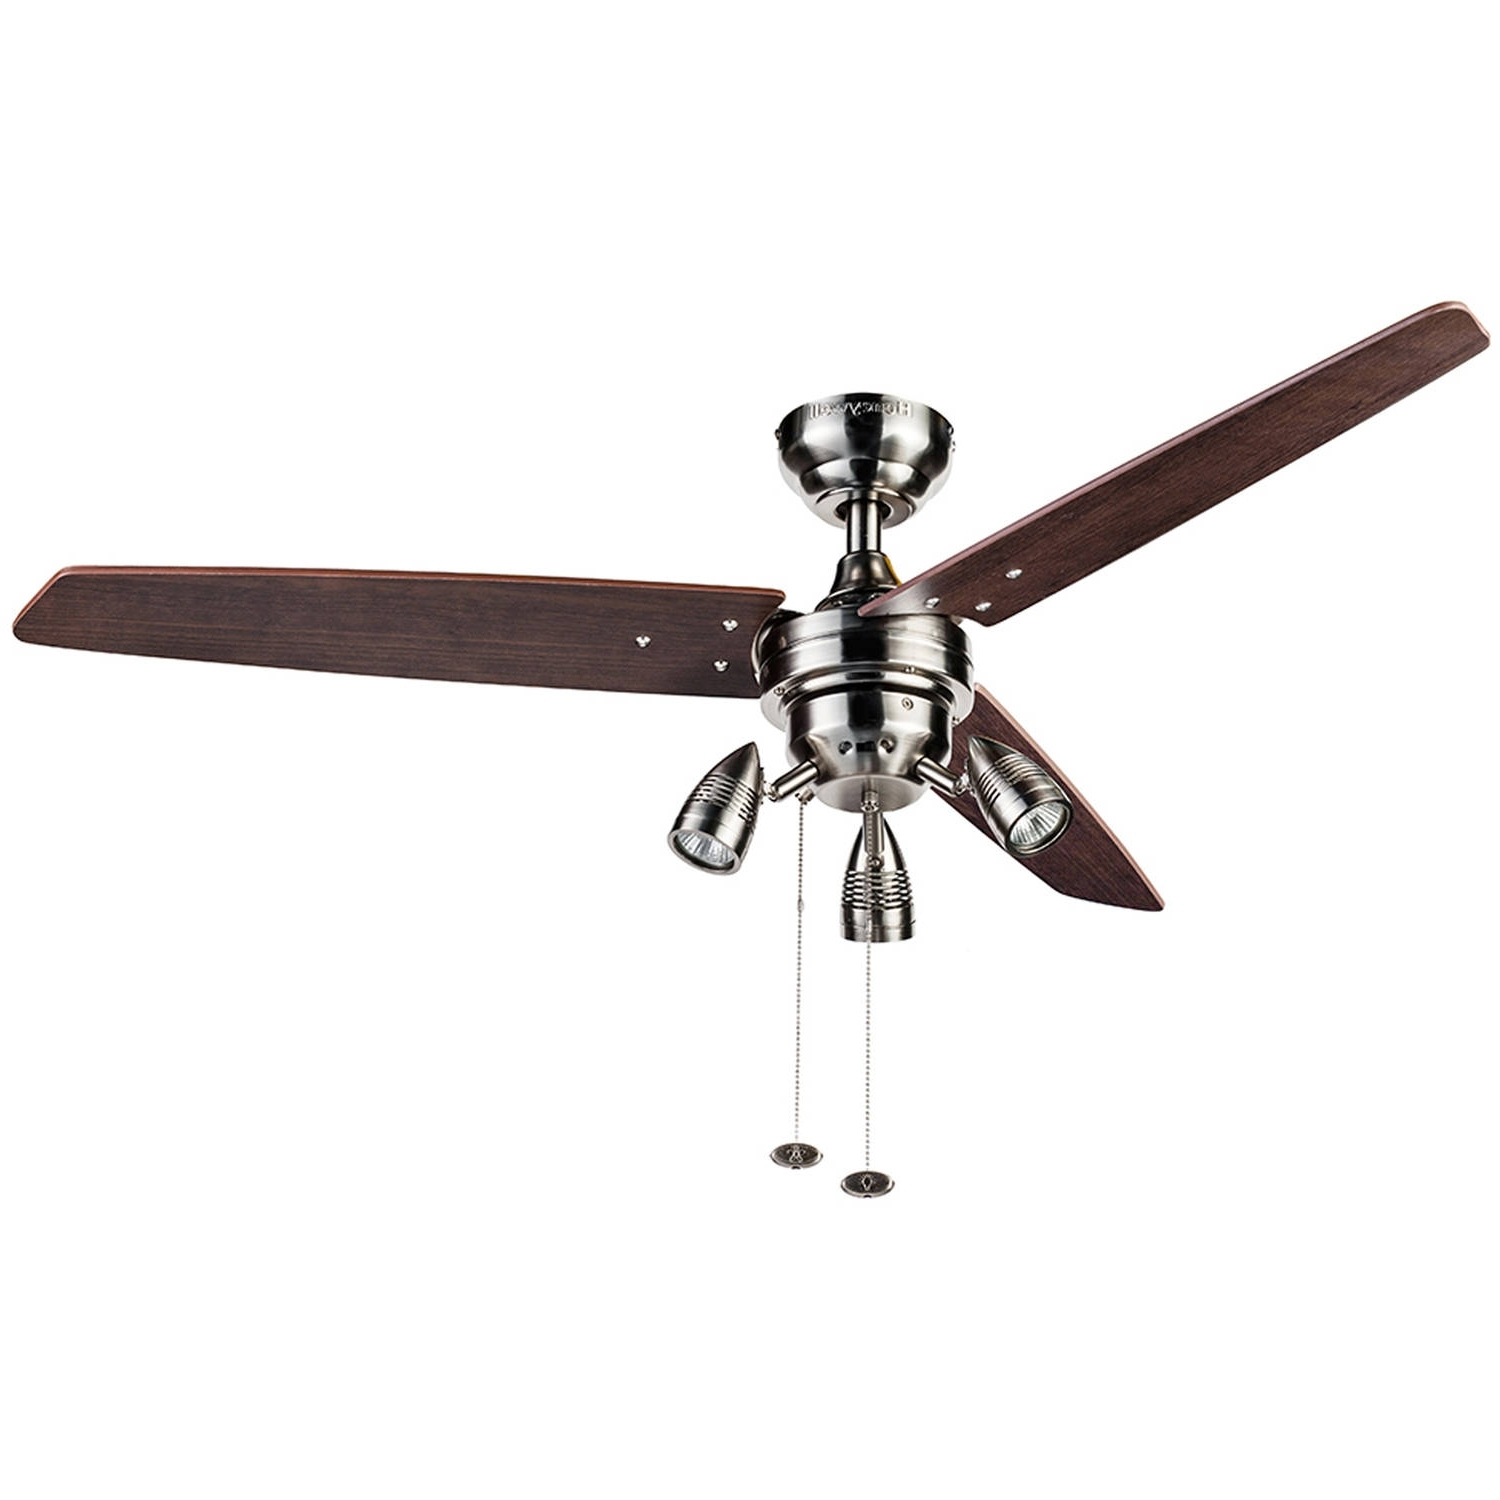 "48 Inch Outdoor Ceiling Fans Pertaining To Popular 42"" Mainstays Hugger Indoor Ceiling Fan With Light, White – Walmart (Gallery 12 of 20)"